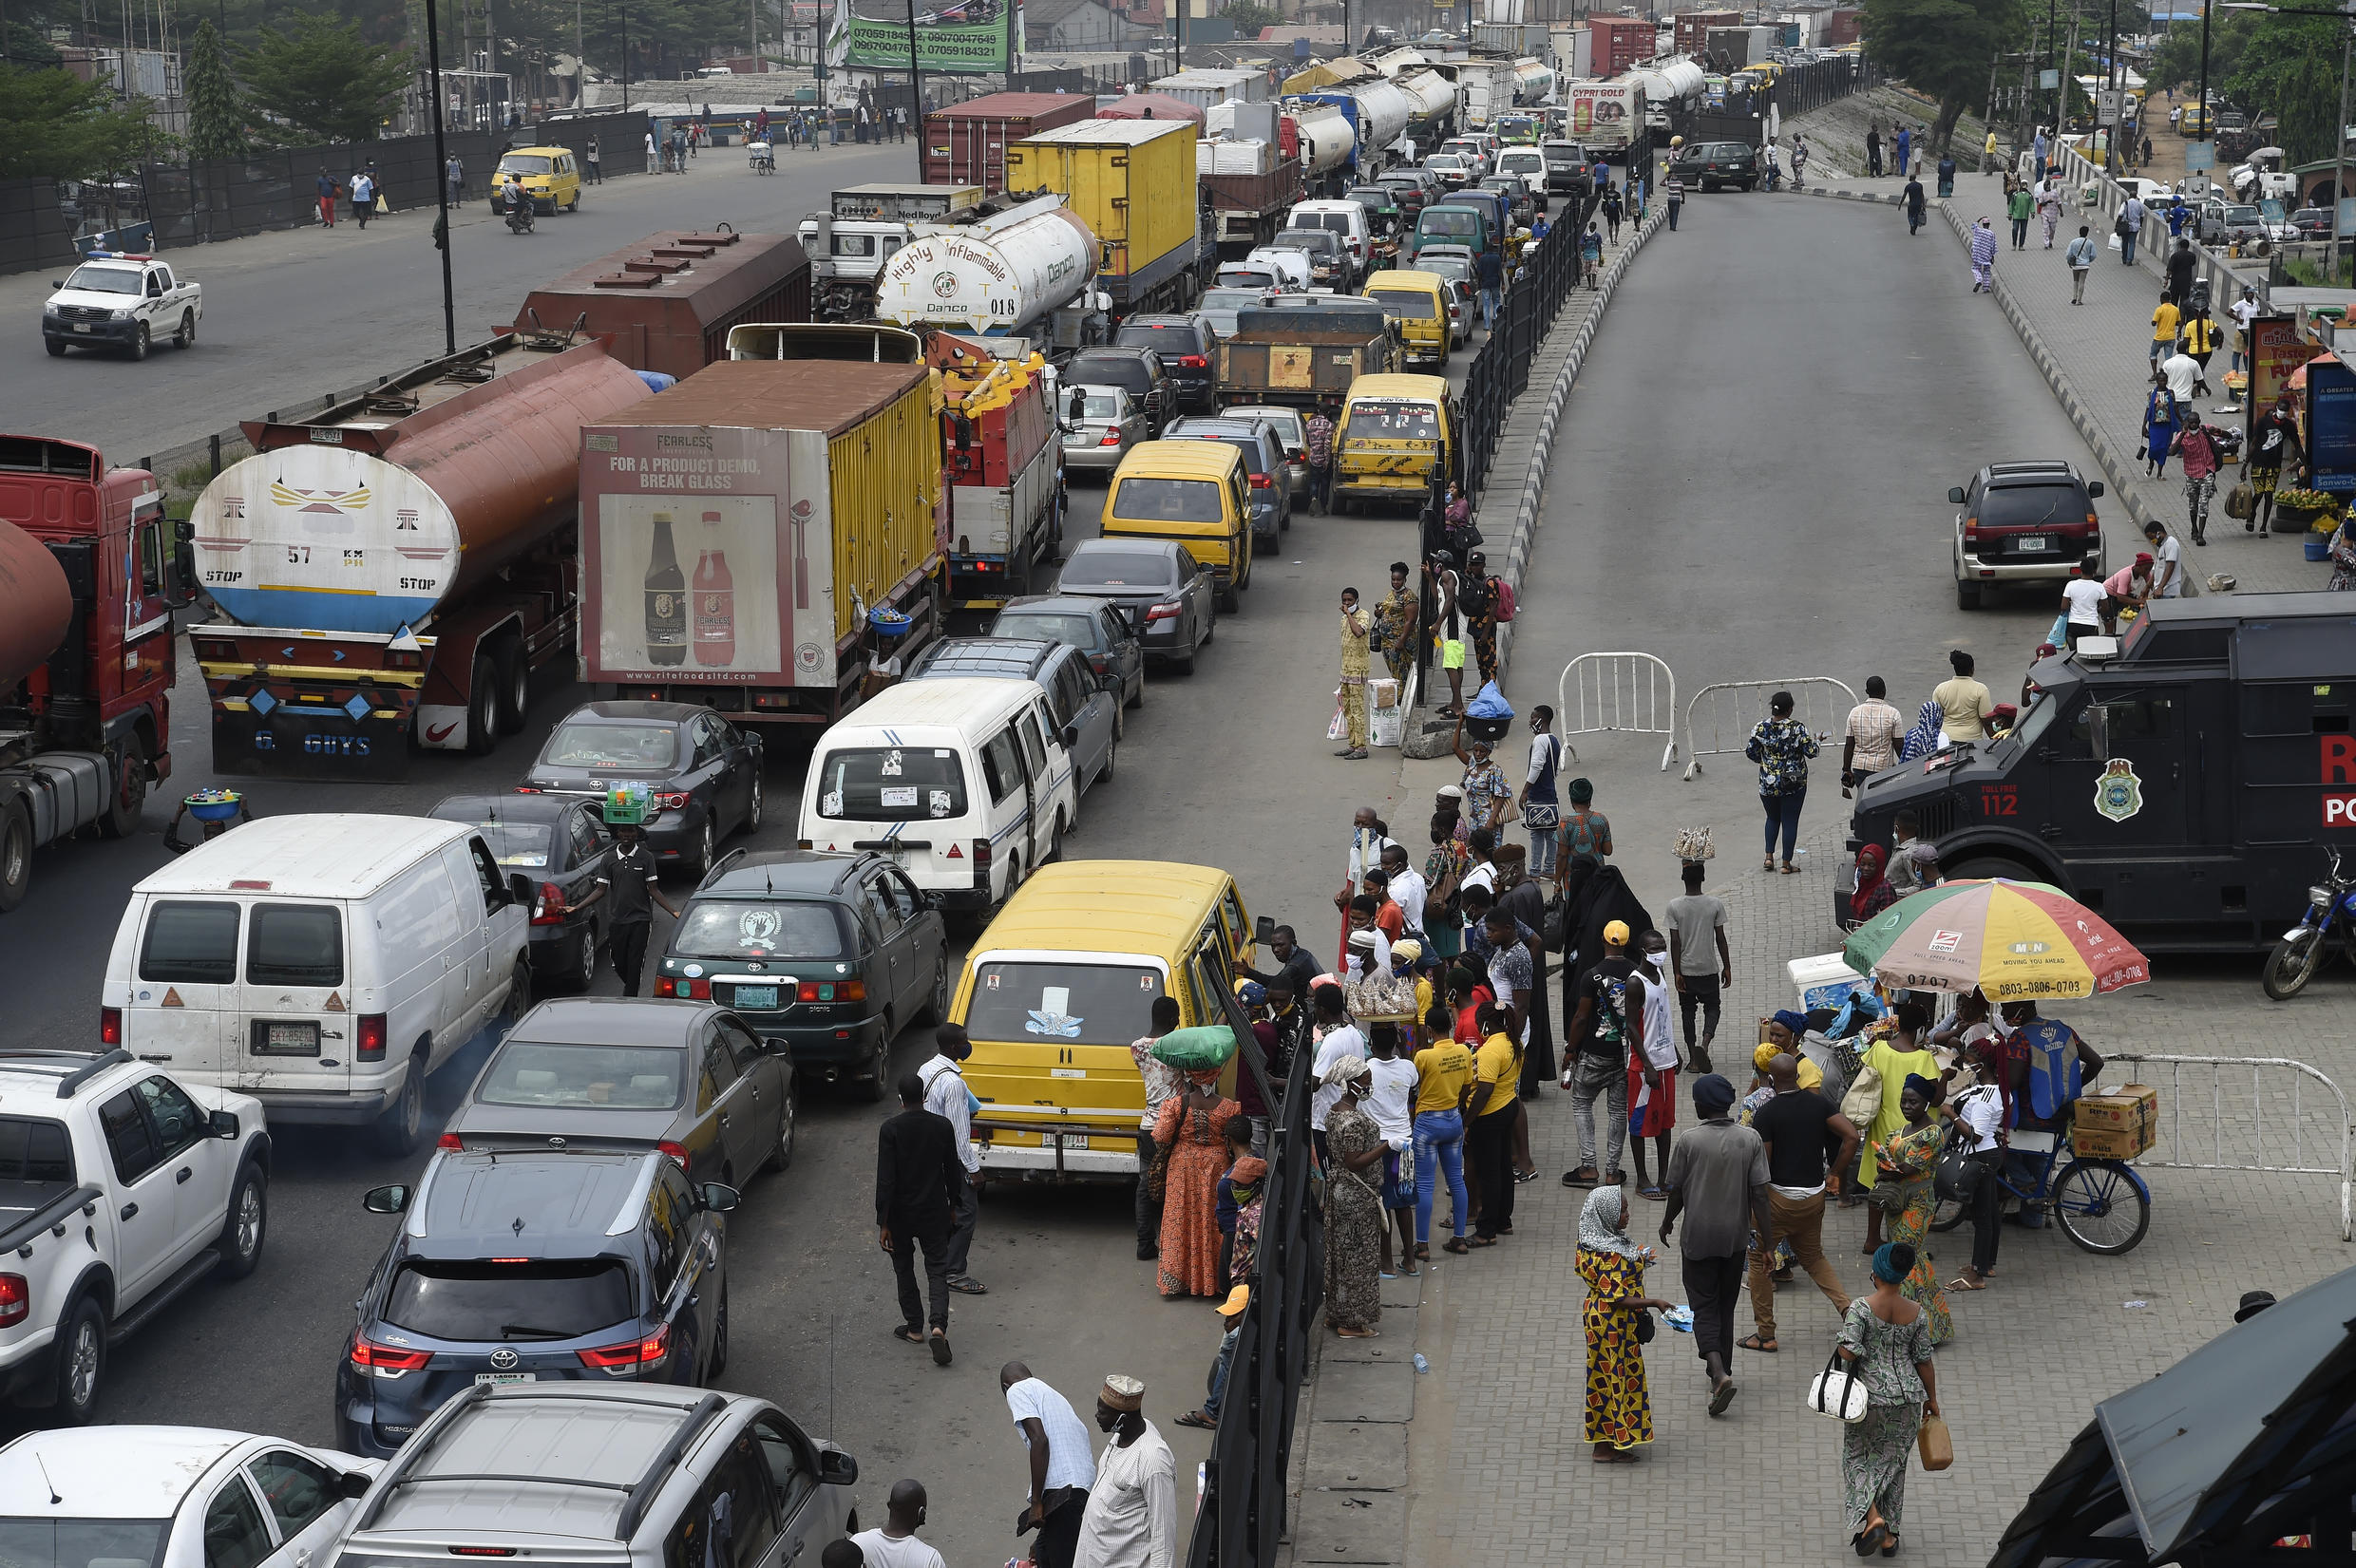 Nigerians take to the roads again in Lagos on May 4, 2020, after five weeks in lockdown over the coronavirus outbreak.